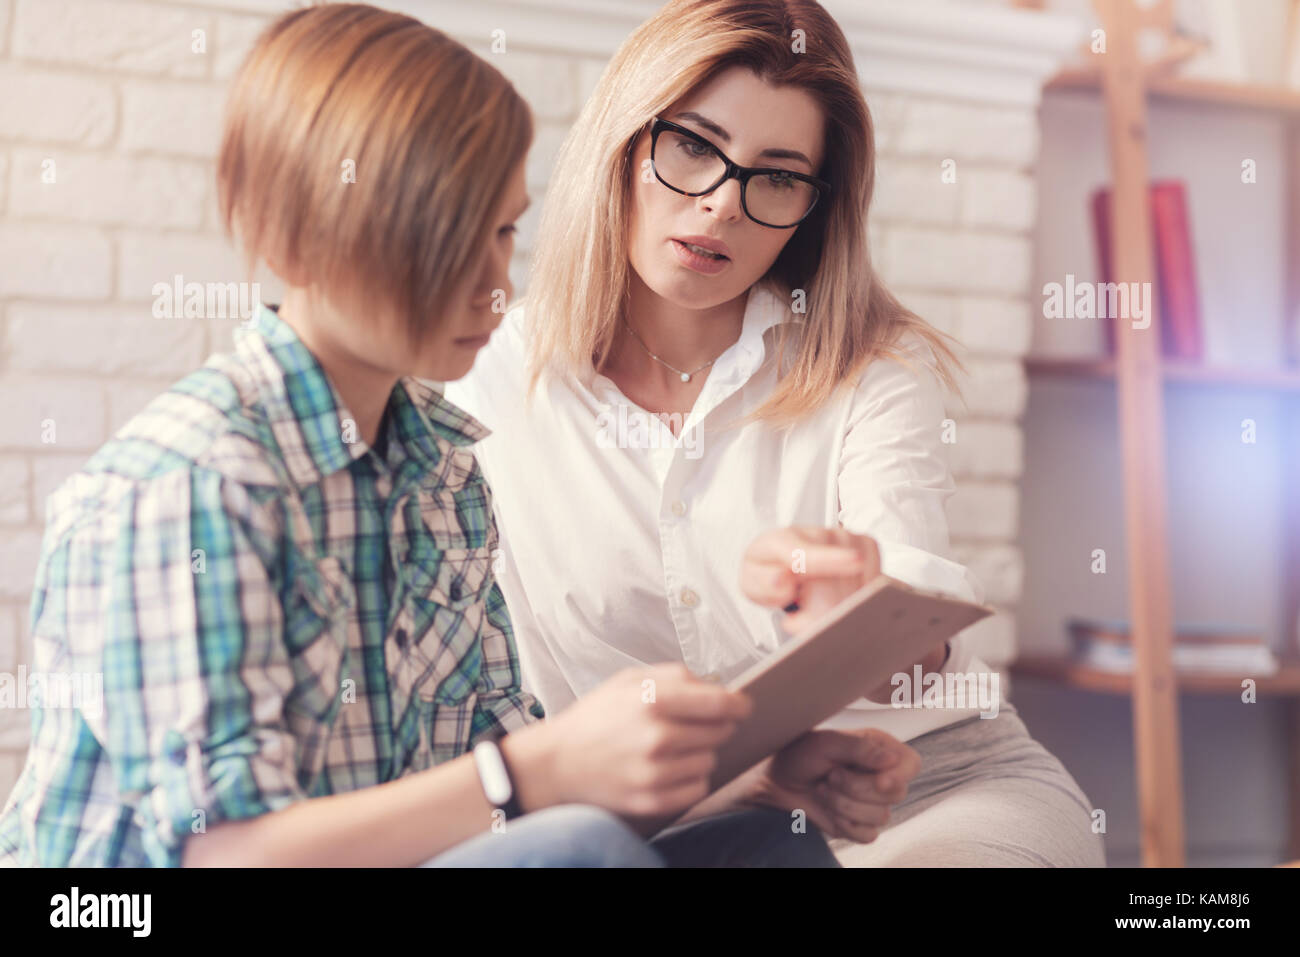 Professioanl female psychologist givign a test to a schoolboy - Stock Image